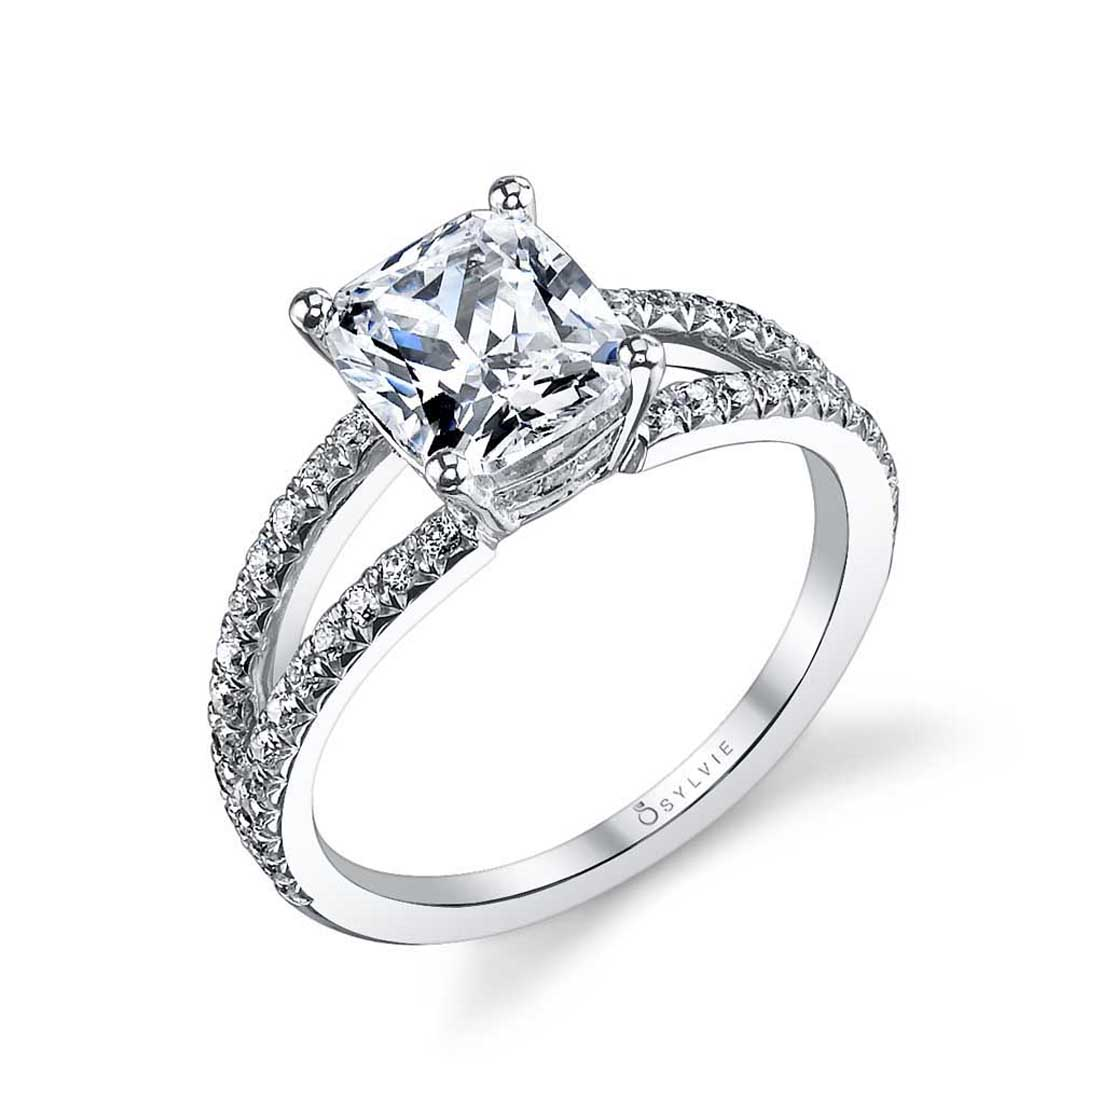 Cushion Cut Engagement Ring with split shank